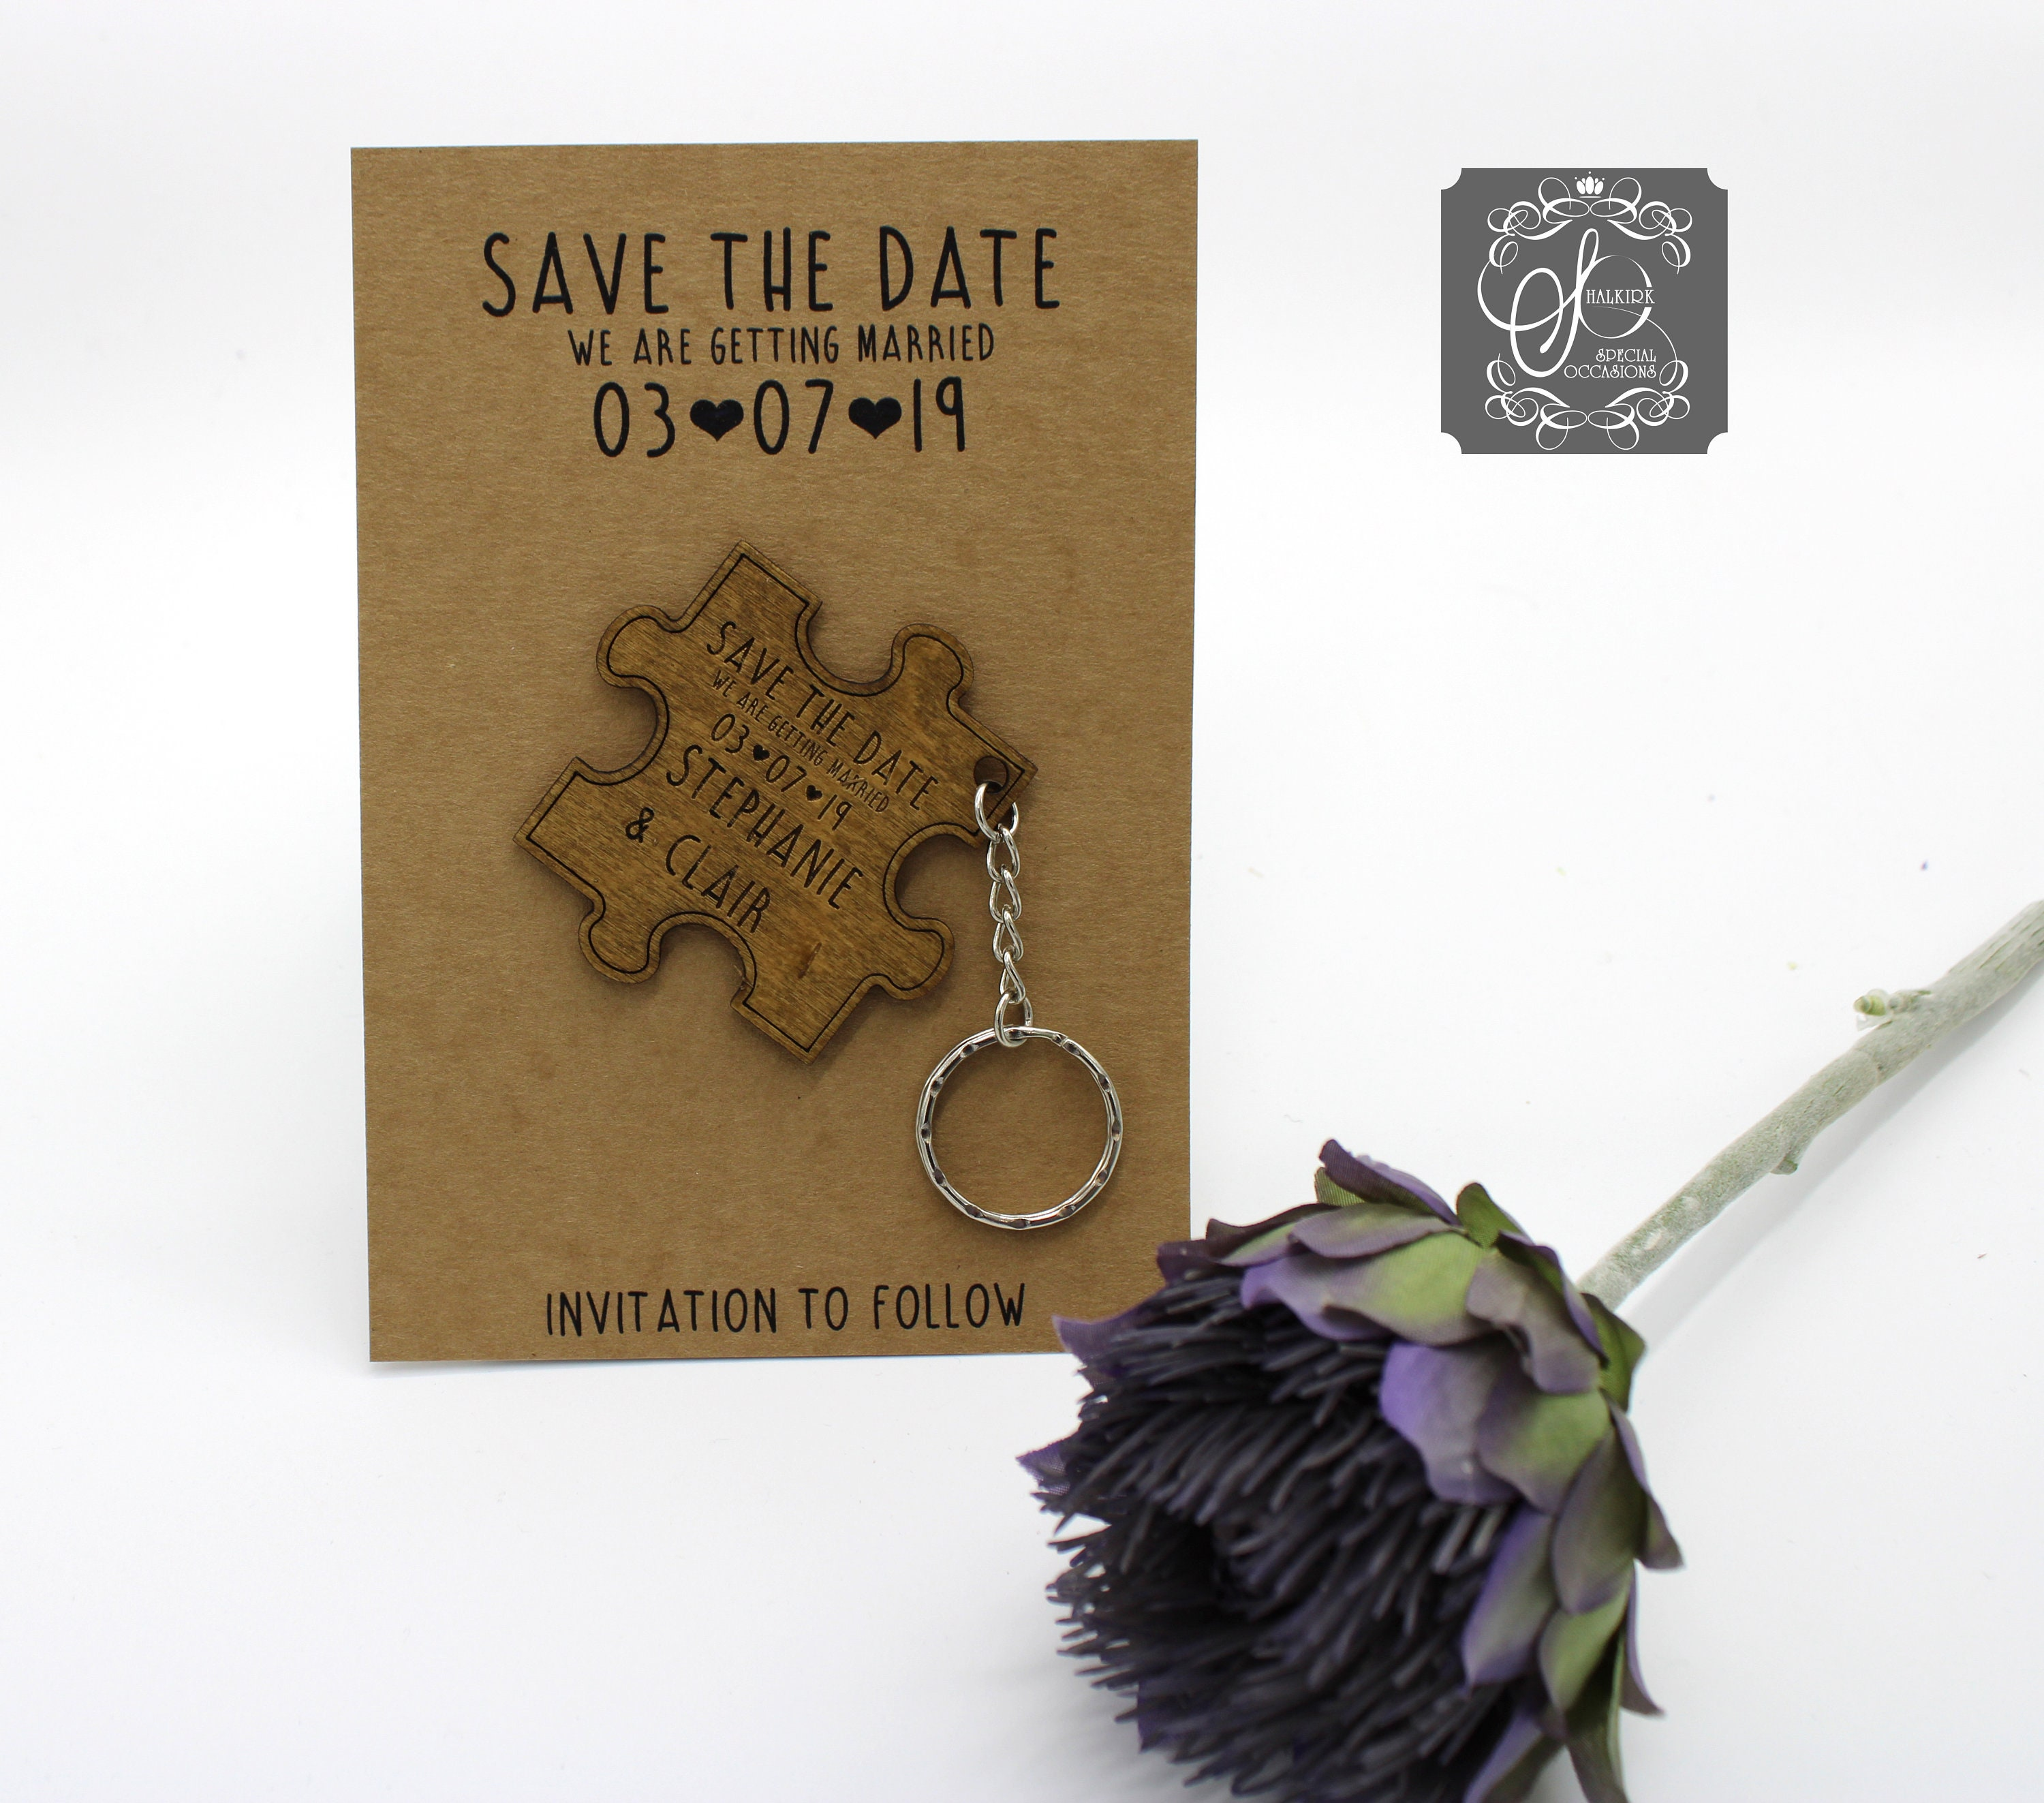 Save the Date Jigsaw Keyring - Brown backing card